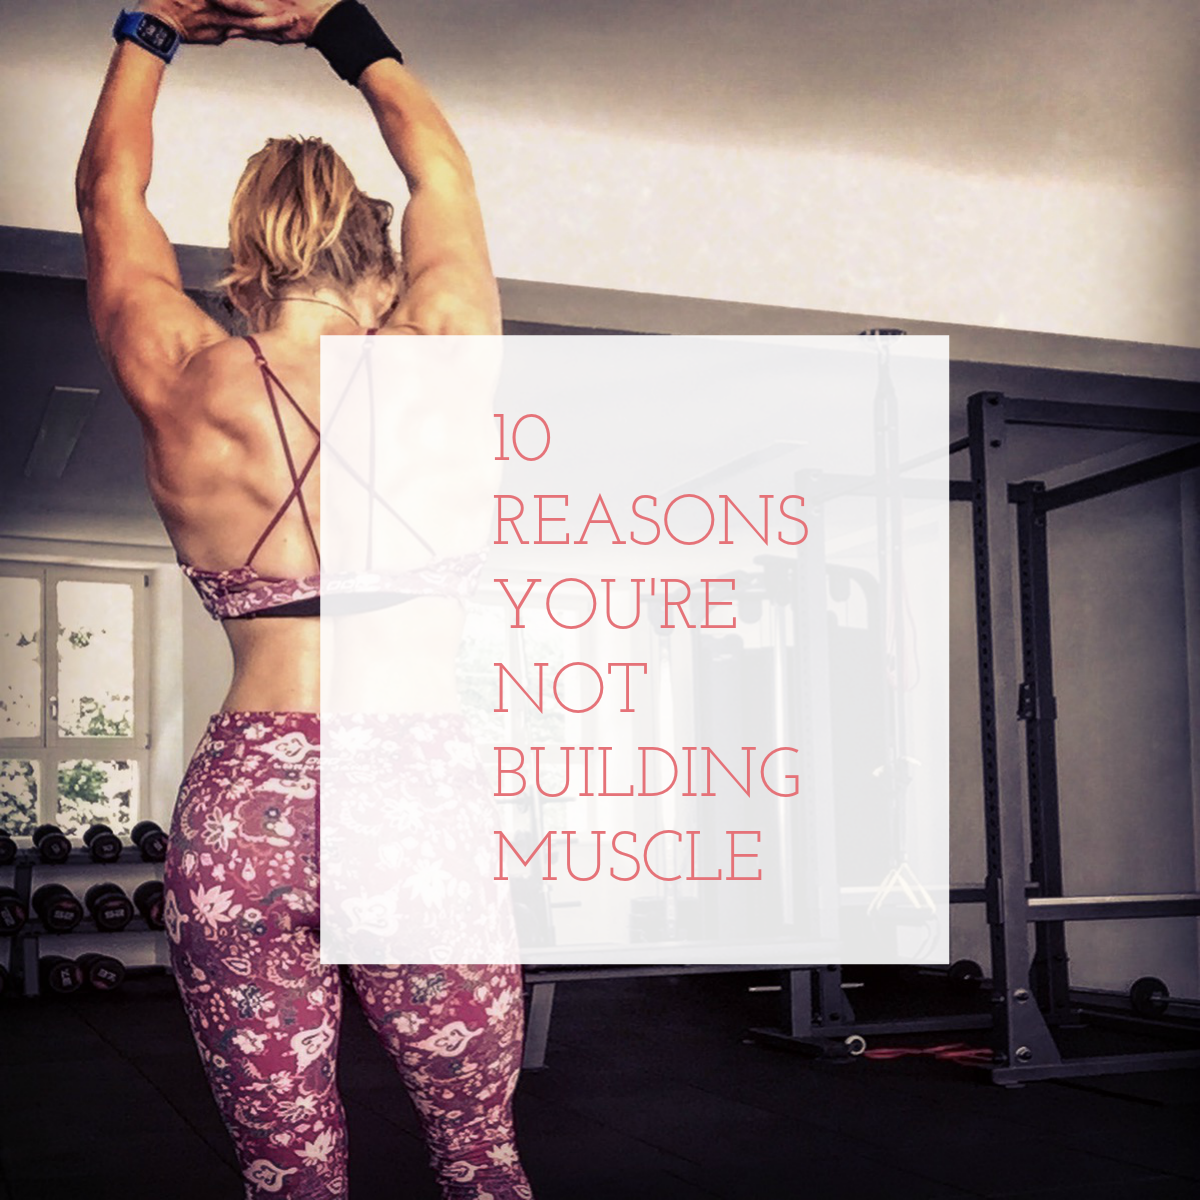 """With Summer coming to an end, how many people out there will be transitioning from 'Summer shredding' to 'Winter bulking'? My guess would be around 50% of the fitness industry!  Now, don't get me wrong, there's absolutely nothing wrong with this - however, I'm also pretty certain that many people out there attempting to 'bulk' are going to struggle. They may have been following this cycle of cutting and bulking for a few years with seeing any significant muscle gain - so why is this? Although building muscle does take time, if you are struggling to see progress or increase your muscle mass after a few years, my guess is that you are doing one (or more) of the following:   1) You aren't Eating Enough!   This is going to be the most significant reason for most people, and that's why it's number one! To grow, you need to be in a surplus. This doesn't mean eating so much that you are gaining a lot of excess body fat, but it does mean eating a decent amount more than you burn (200-500Kcals more) on a consistent basis. This is so that your body has enough to repair and recover as well as grow. I read an analogy recently which the trainer Alex Carneiro uses with his clients. It goes:  """" Can you build a house with blueprints, construction workers, but no raw materials? Nope.""""       2) You don't put enough effort into your training   Some sessions aren't going to be your best - sometimes you're going to be worn down, exhausted or have other things on your mind, and that's ok. But think of your average session: are you skimping out on some reps or sets or choosing not to add those few extra pounds to your lift because you can't be bothered? If you want to build muscle, you need to put the effort into your training session. You need to use the principle of progressive overload to continue to challenge your body by either lifting heavier, adding more sets or adding more reps: you can't just go through the motions.     3) You aren't training with purpose   This brings me to poin"""